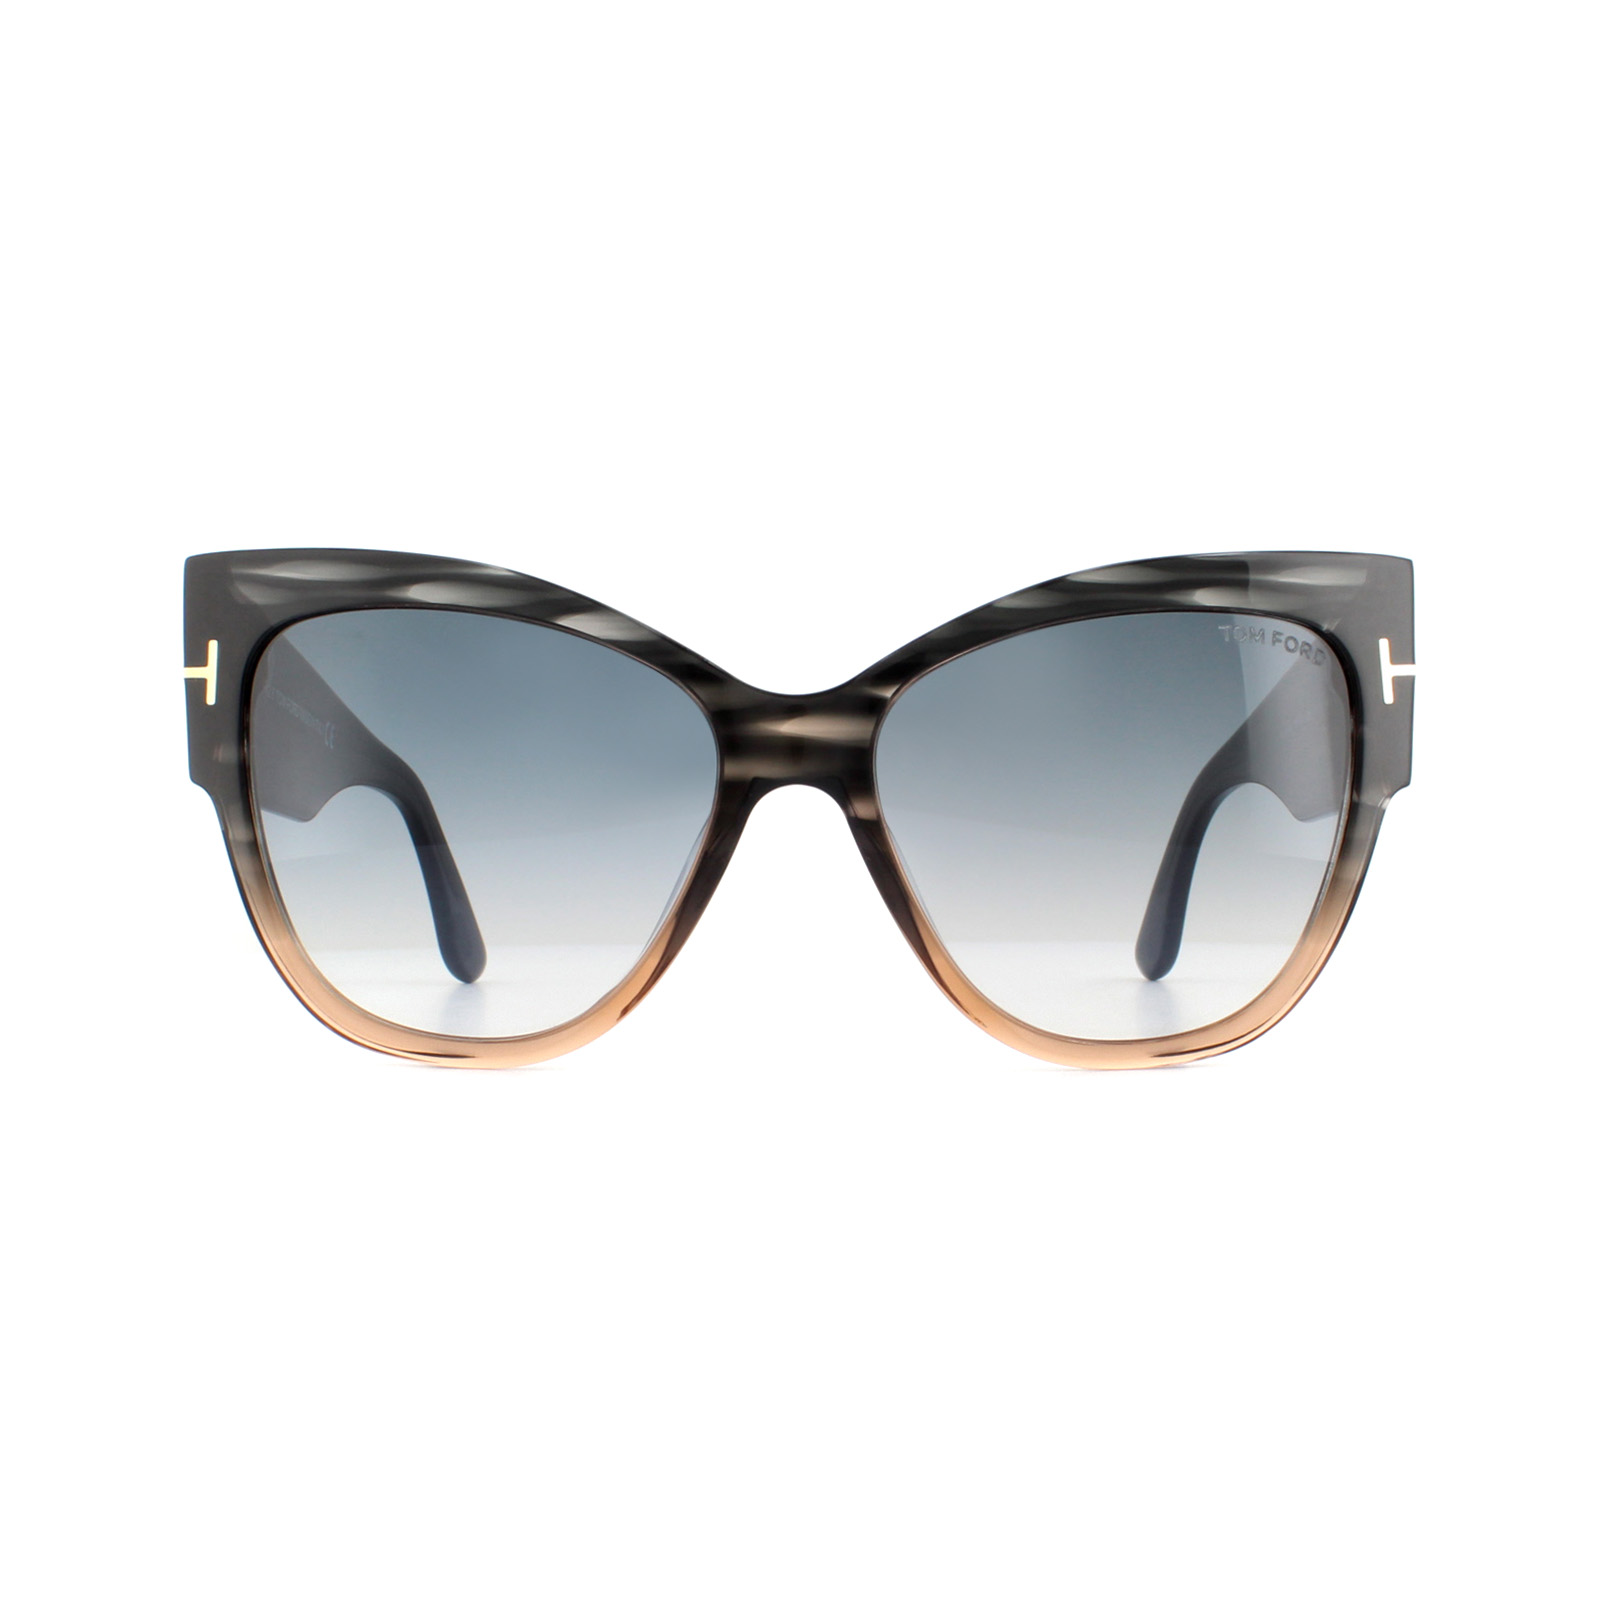 d97dbc24ef Sentinel Tom Ford Sunglasses Anoushka 0371 20B Grey and Brown Crystal Grey  Blue Gradient